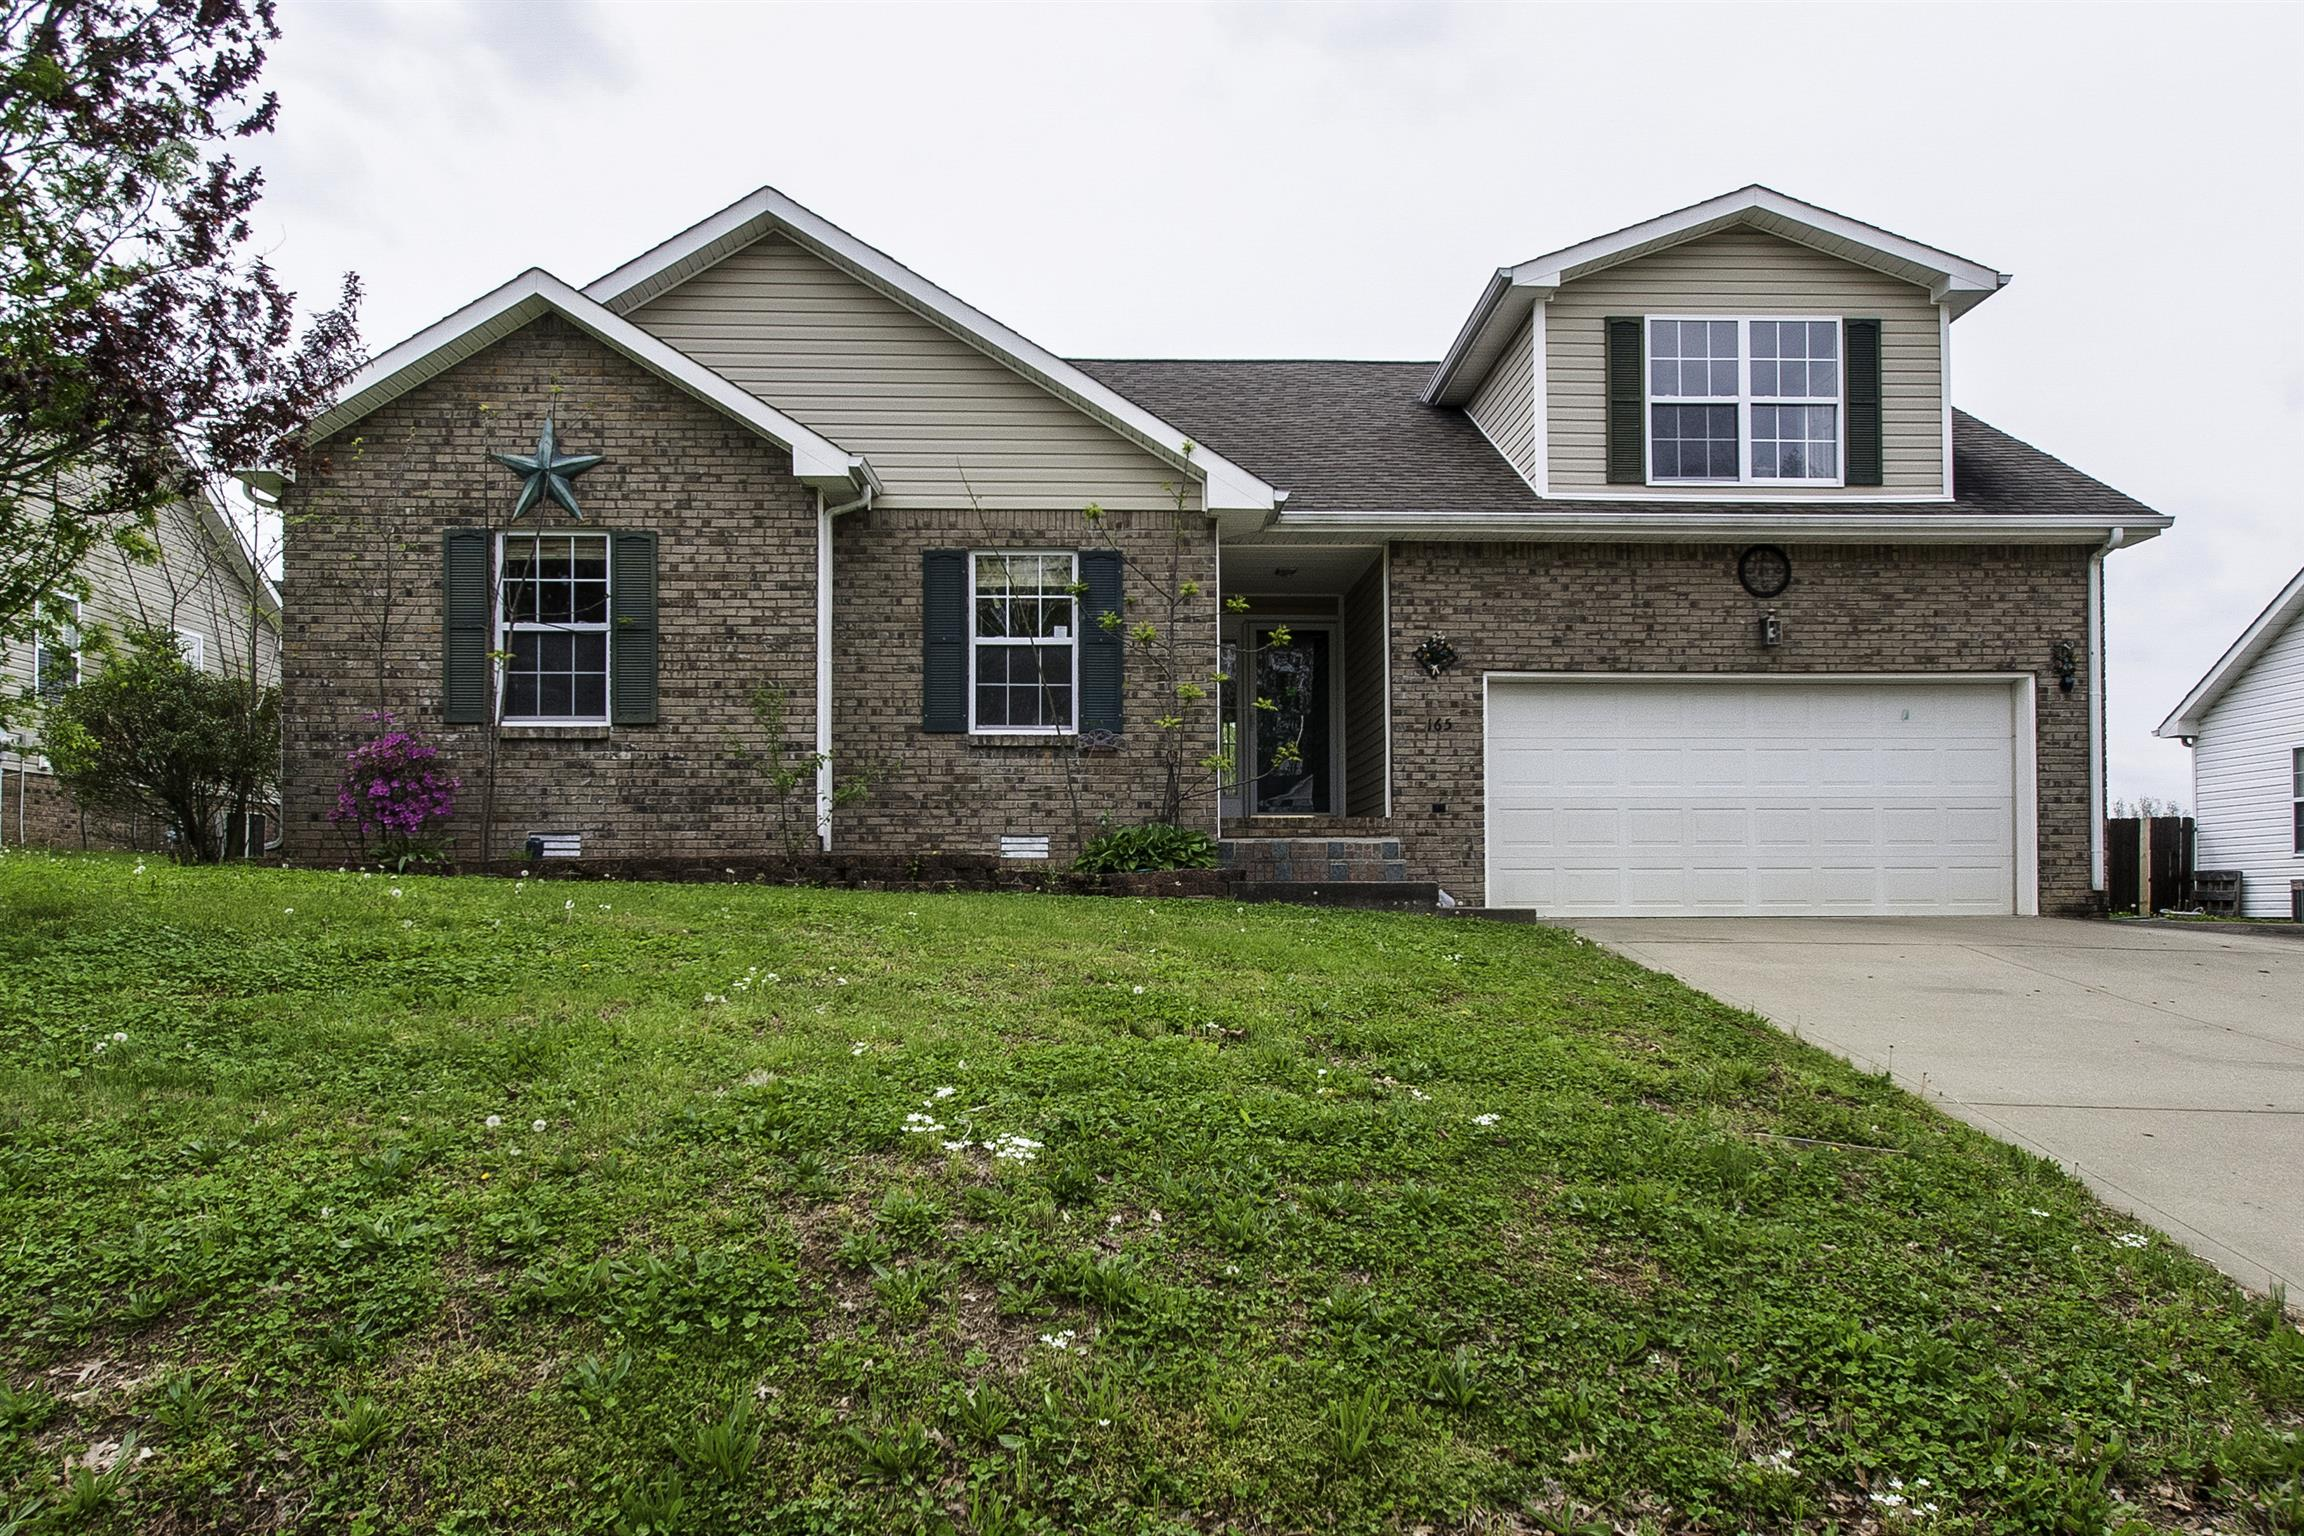 Homes for Sale in Cedar Springs Subdivision Clarksville TN